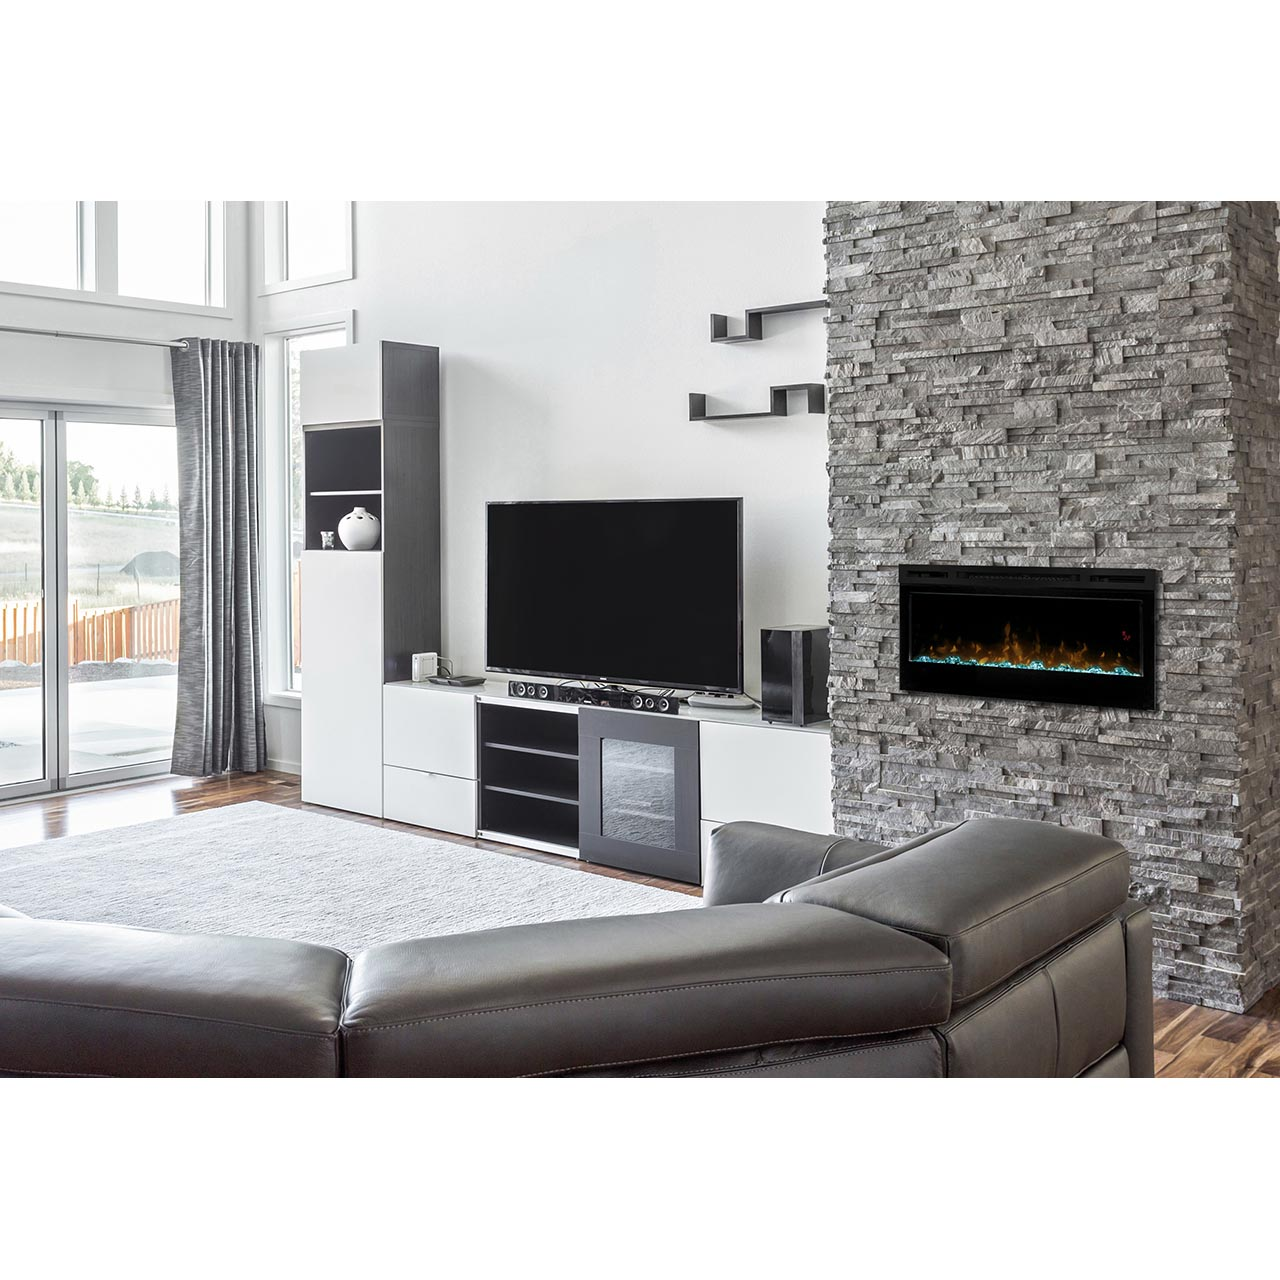 reviews fireplace logan electric wayfair improvement home mounted wall clairevale pdp wade ca